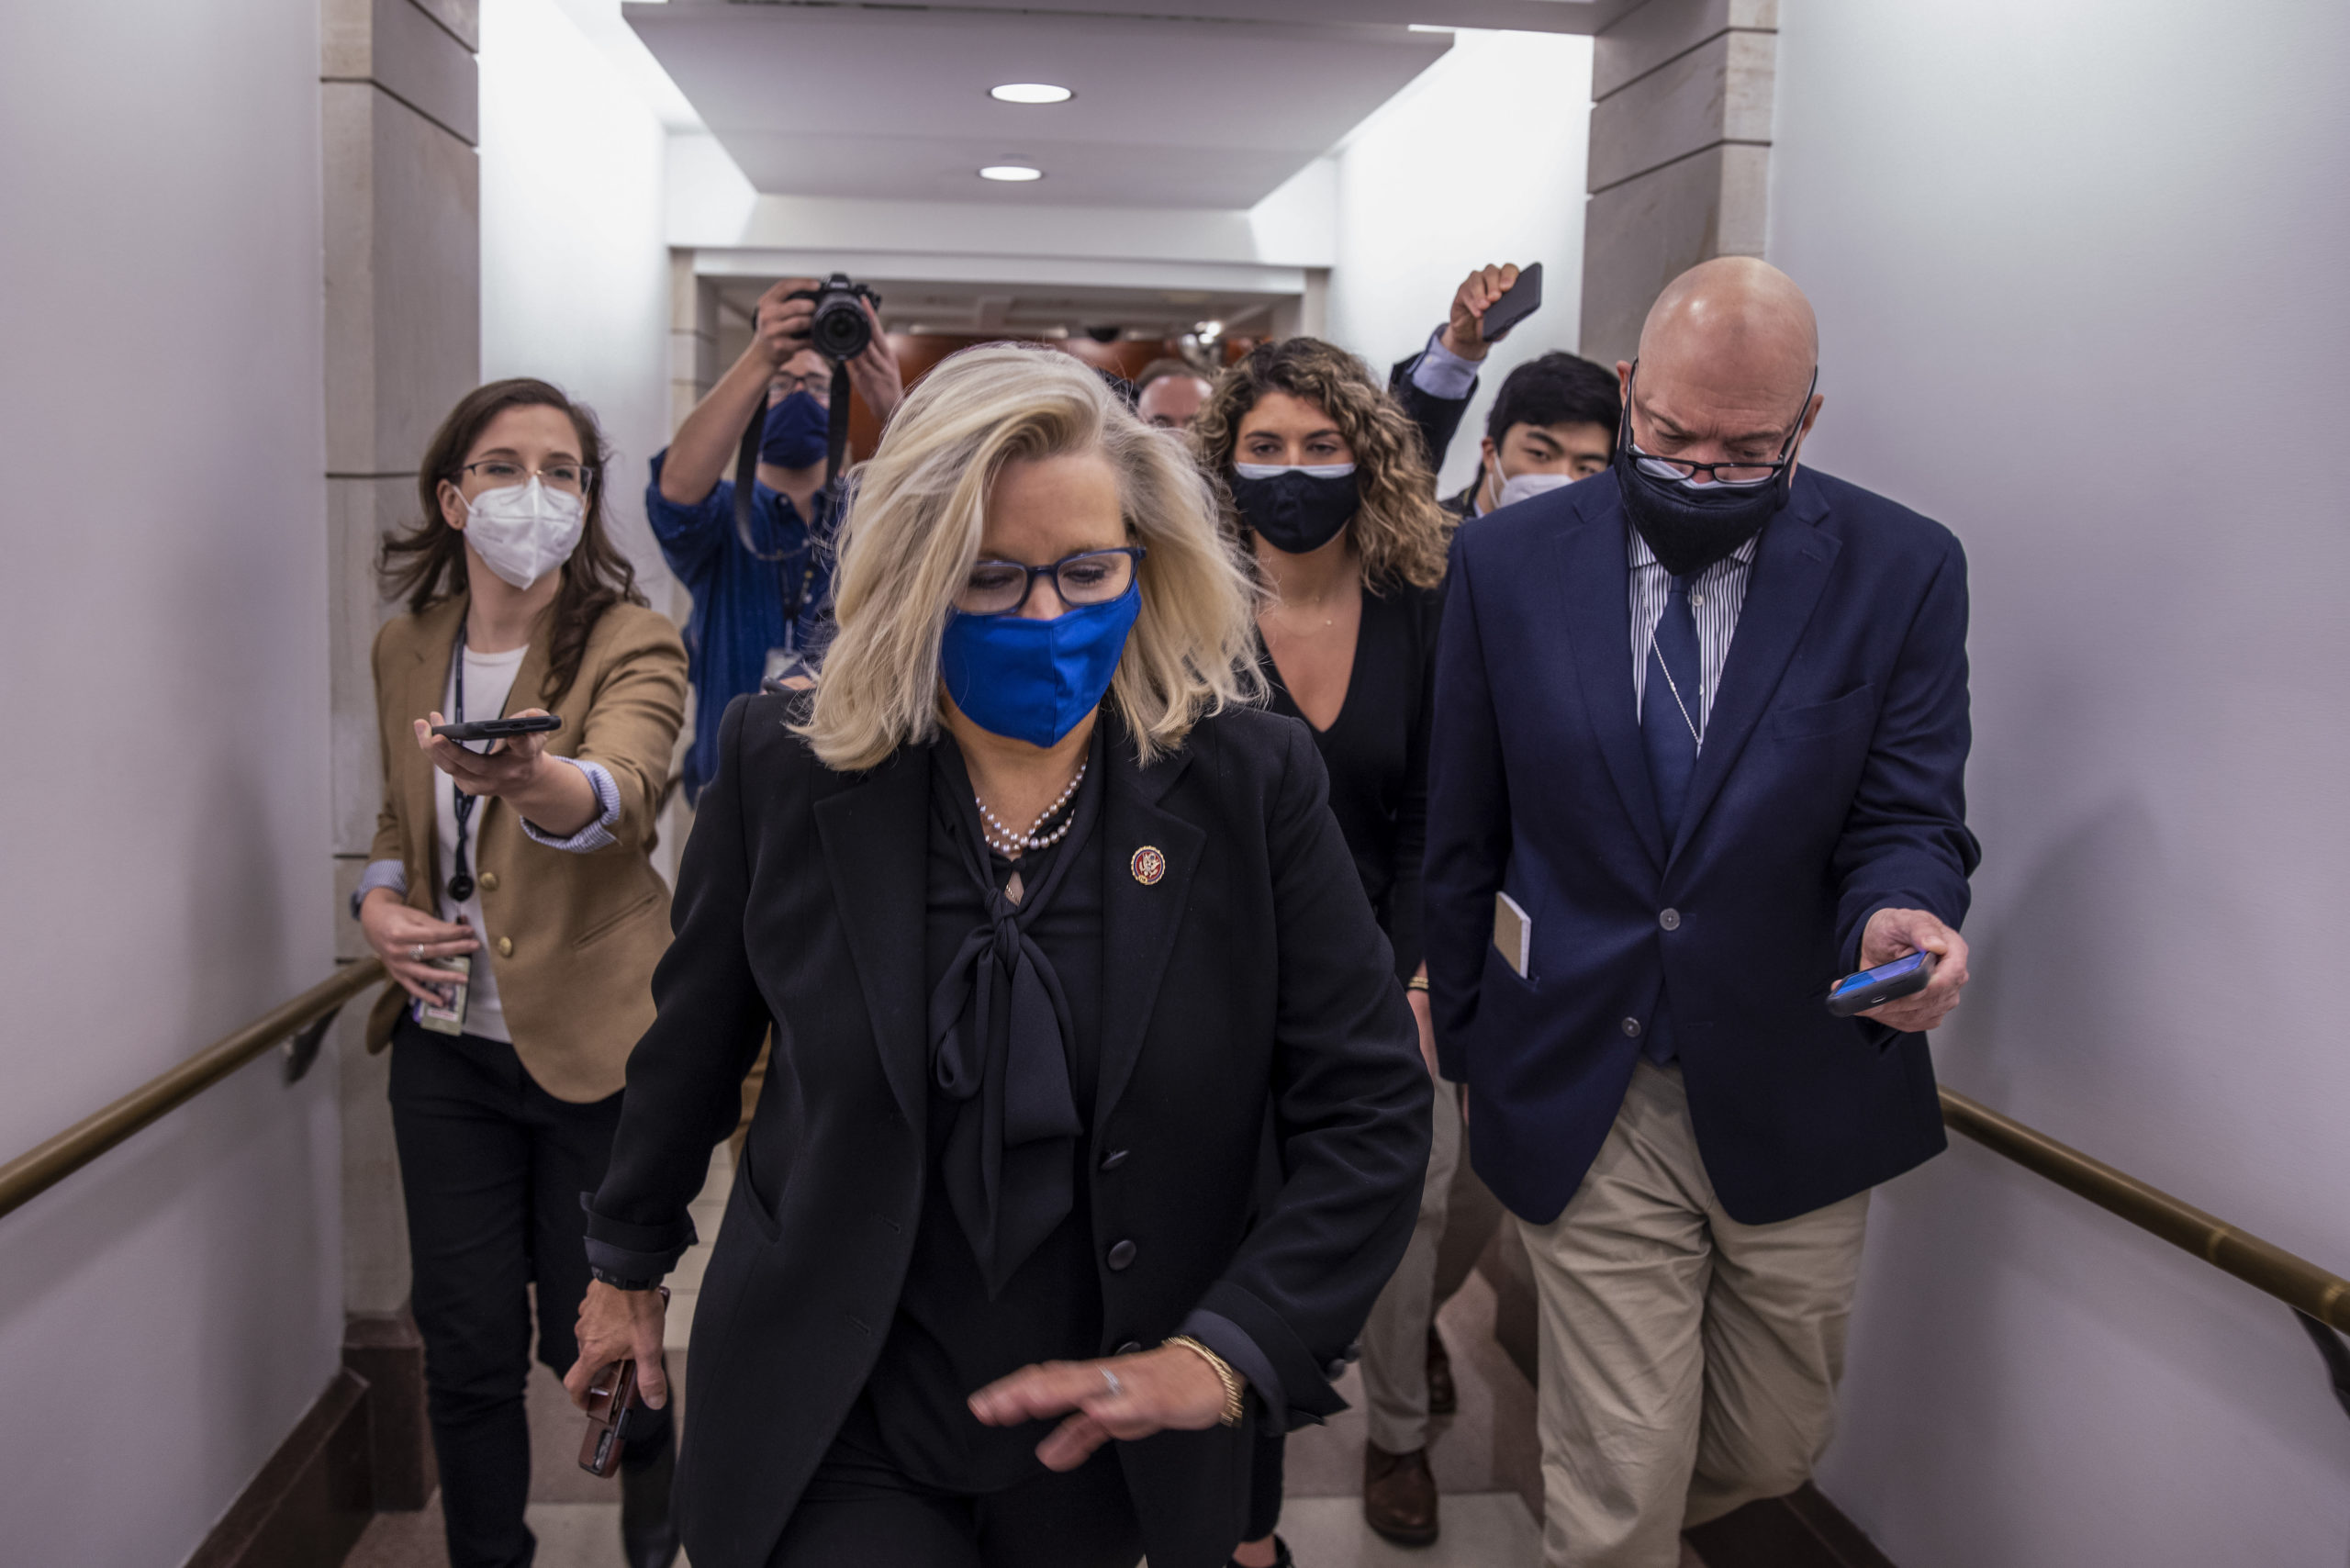 Rep. Liz Cheney heads to the House floor to vote at the U.S. Capitol on February 03, 2021 in Washington, DC. (Tasos Katopodis/Getty Images)